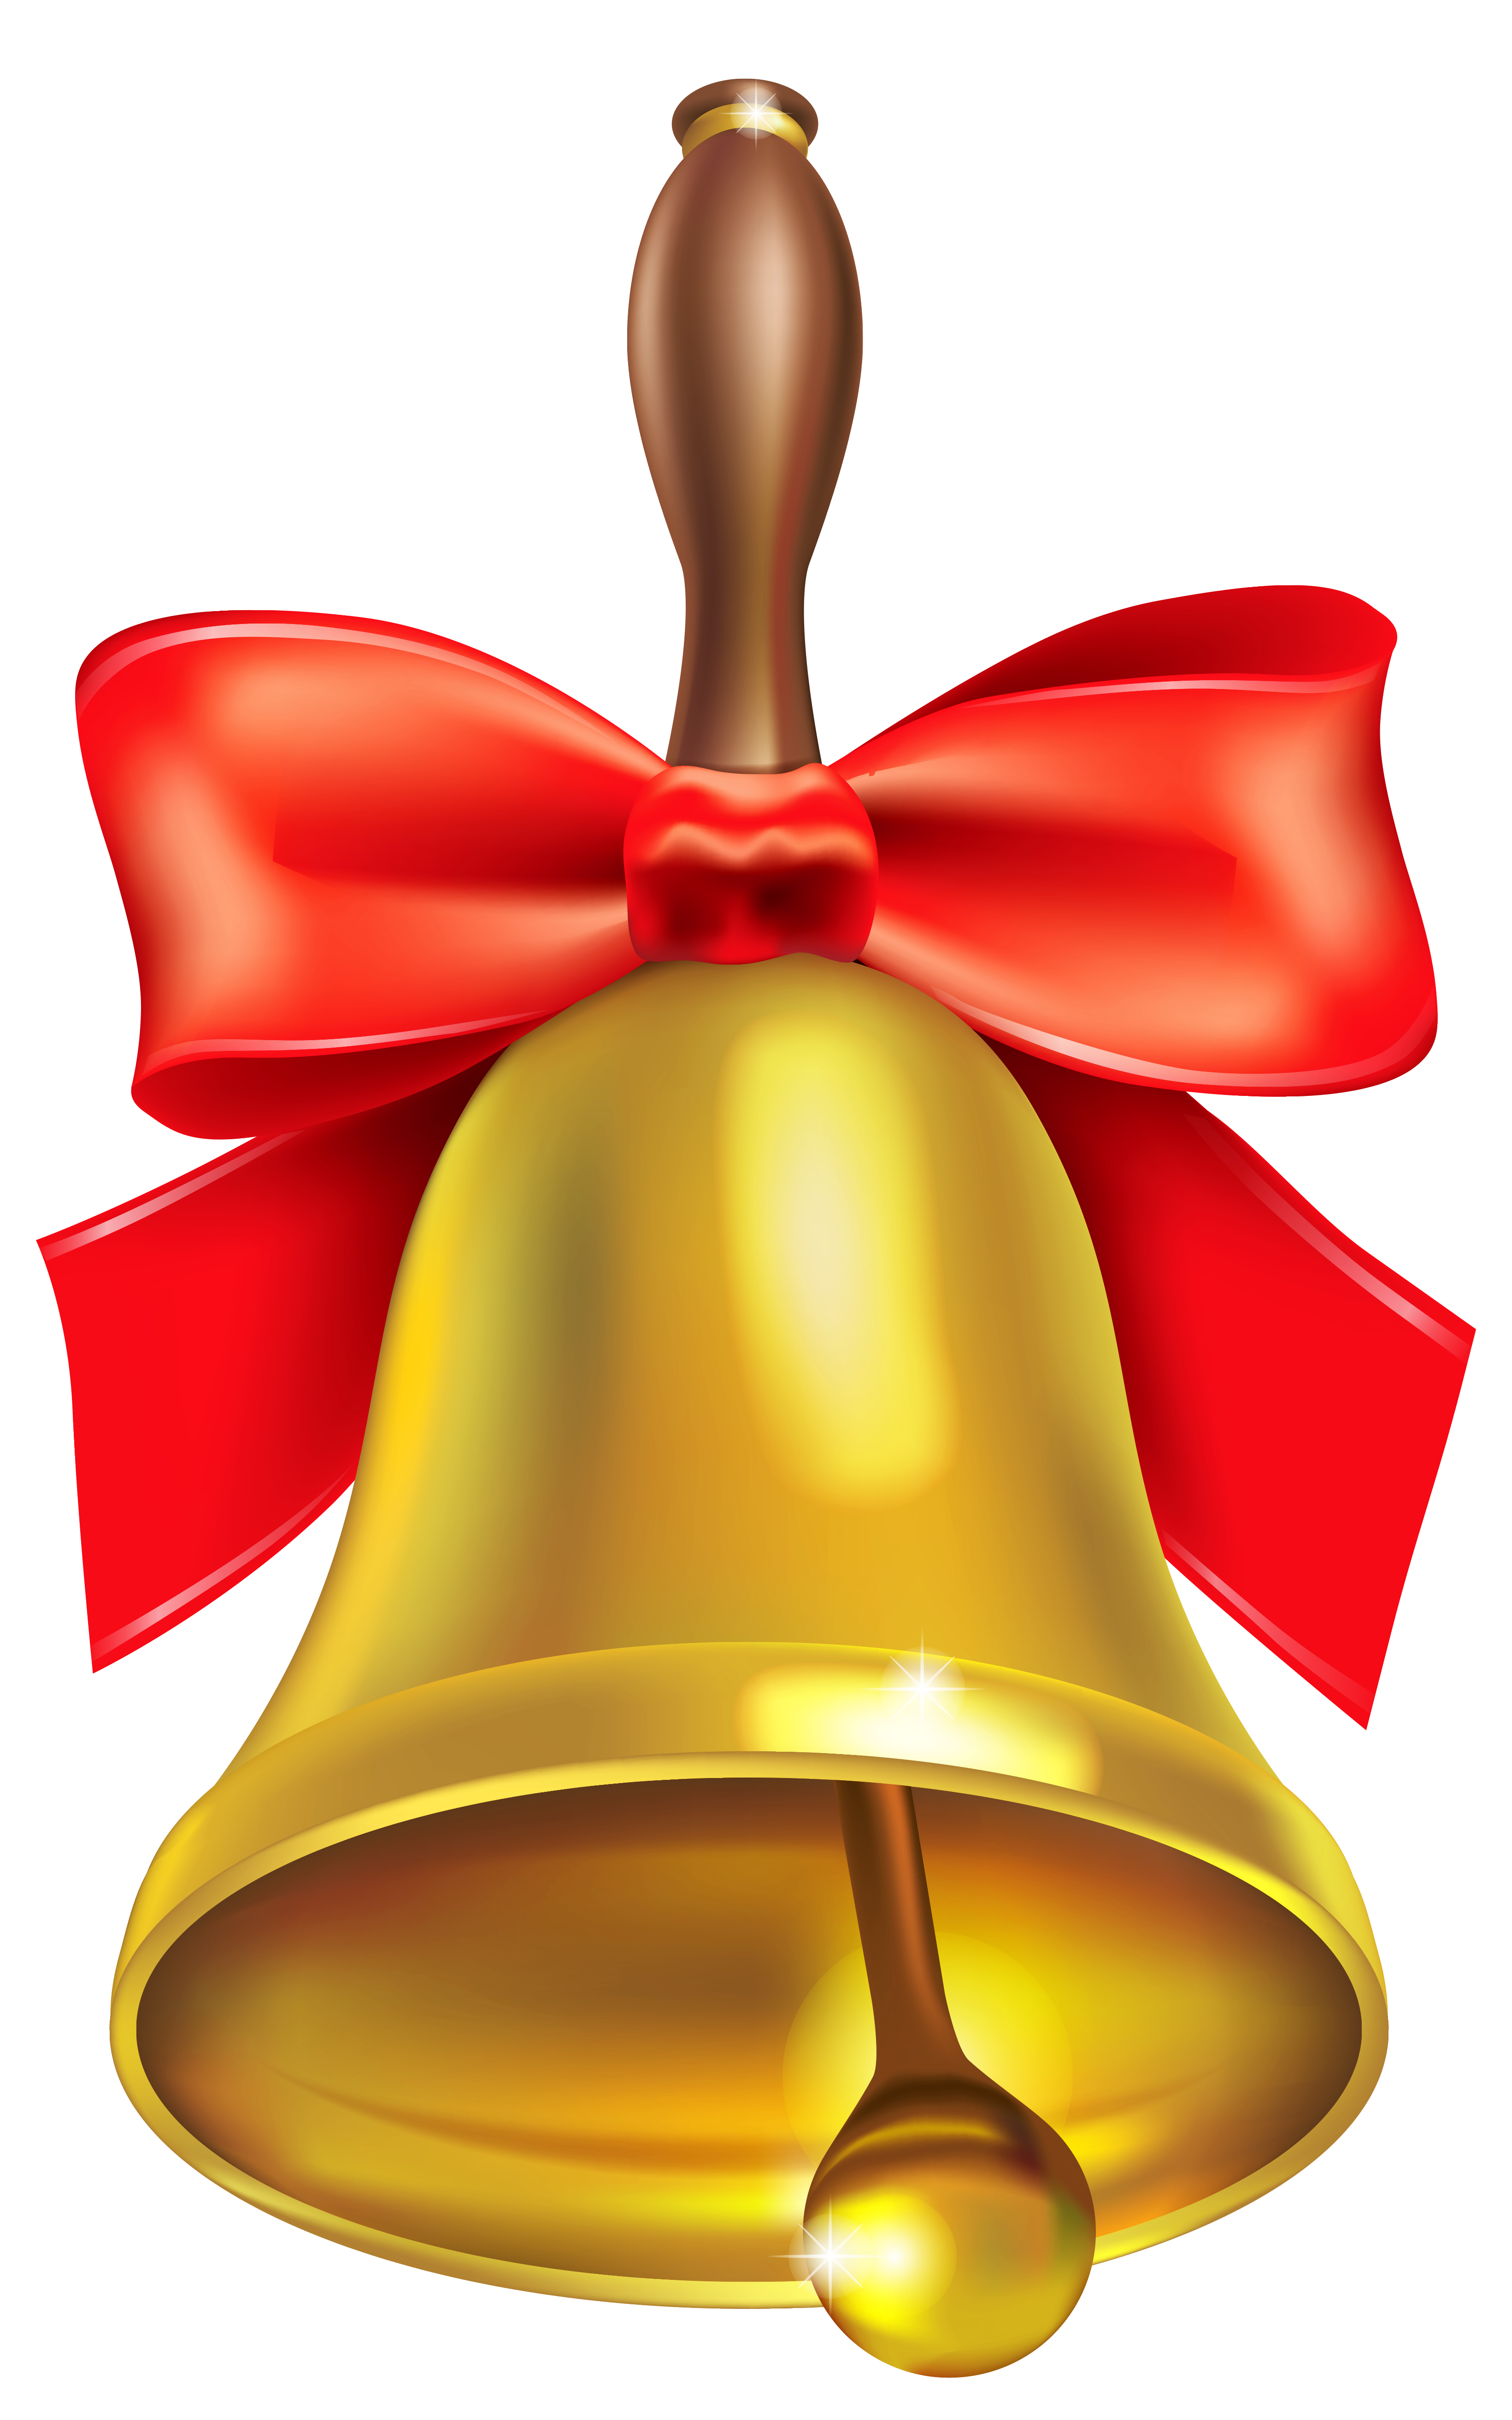 Christmas Bell with Bow PNG Image